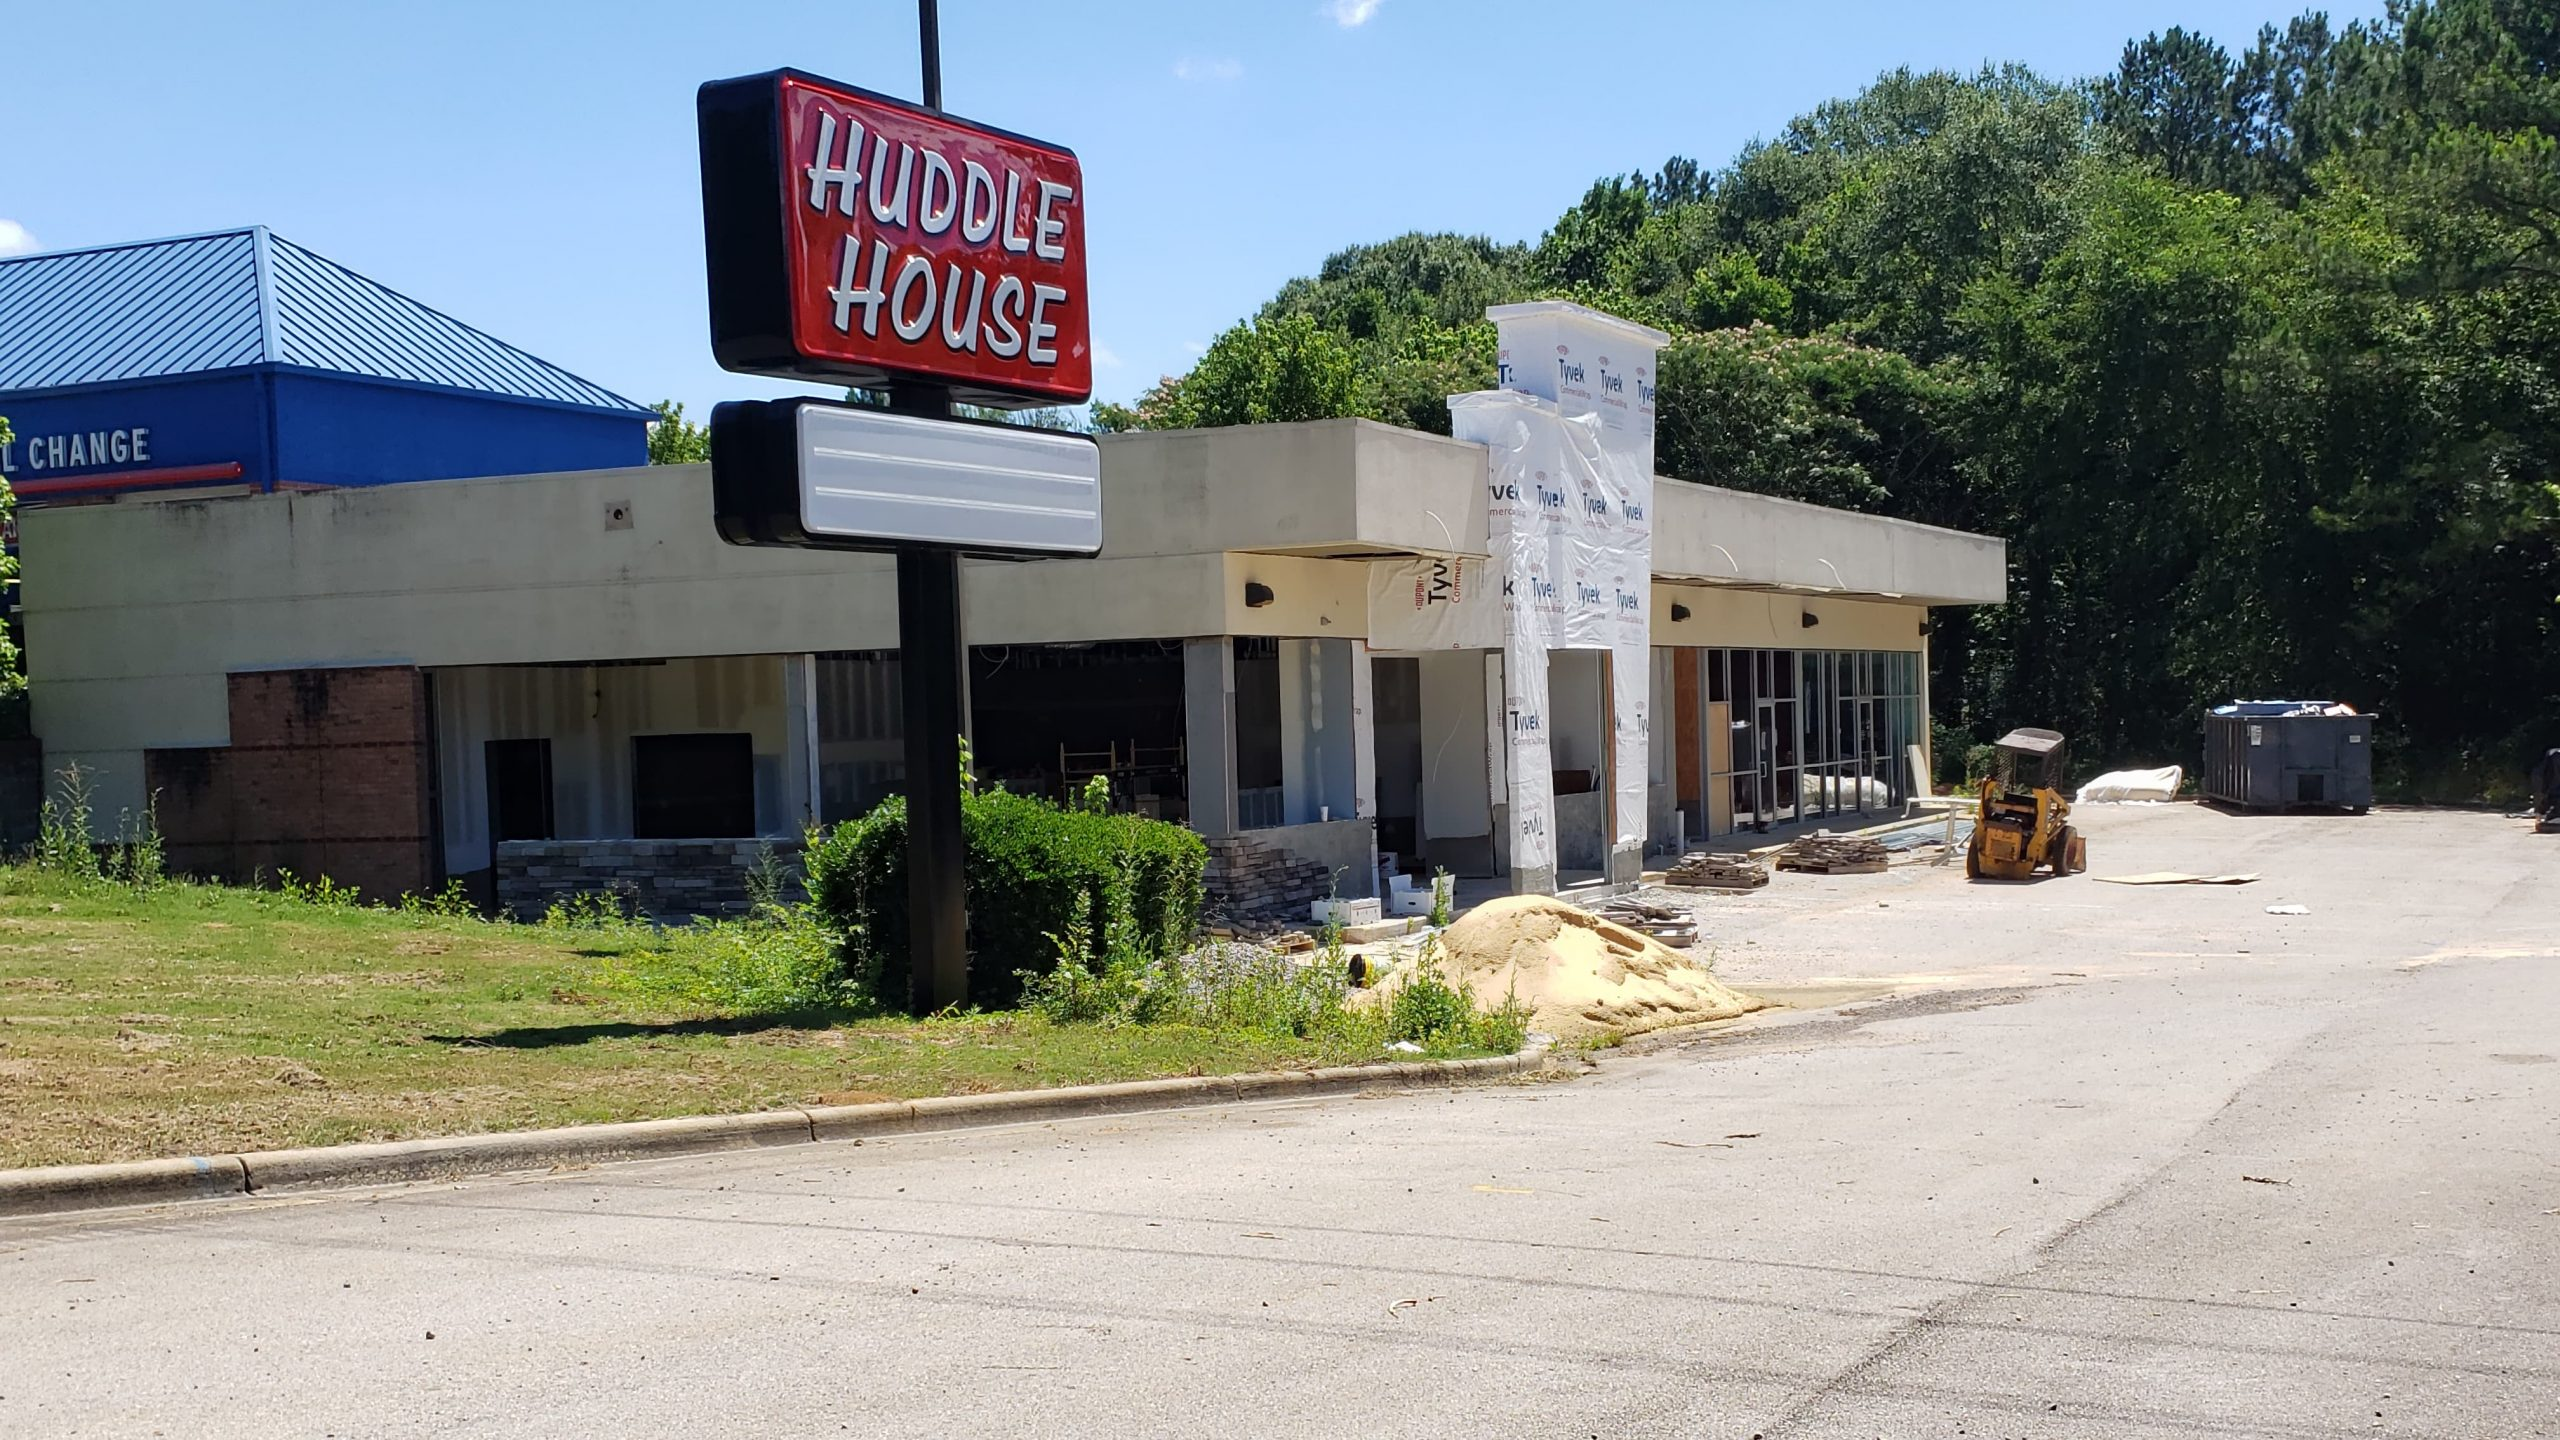 Huddle House construction in Pinson set to resume this month